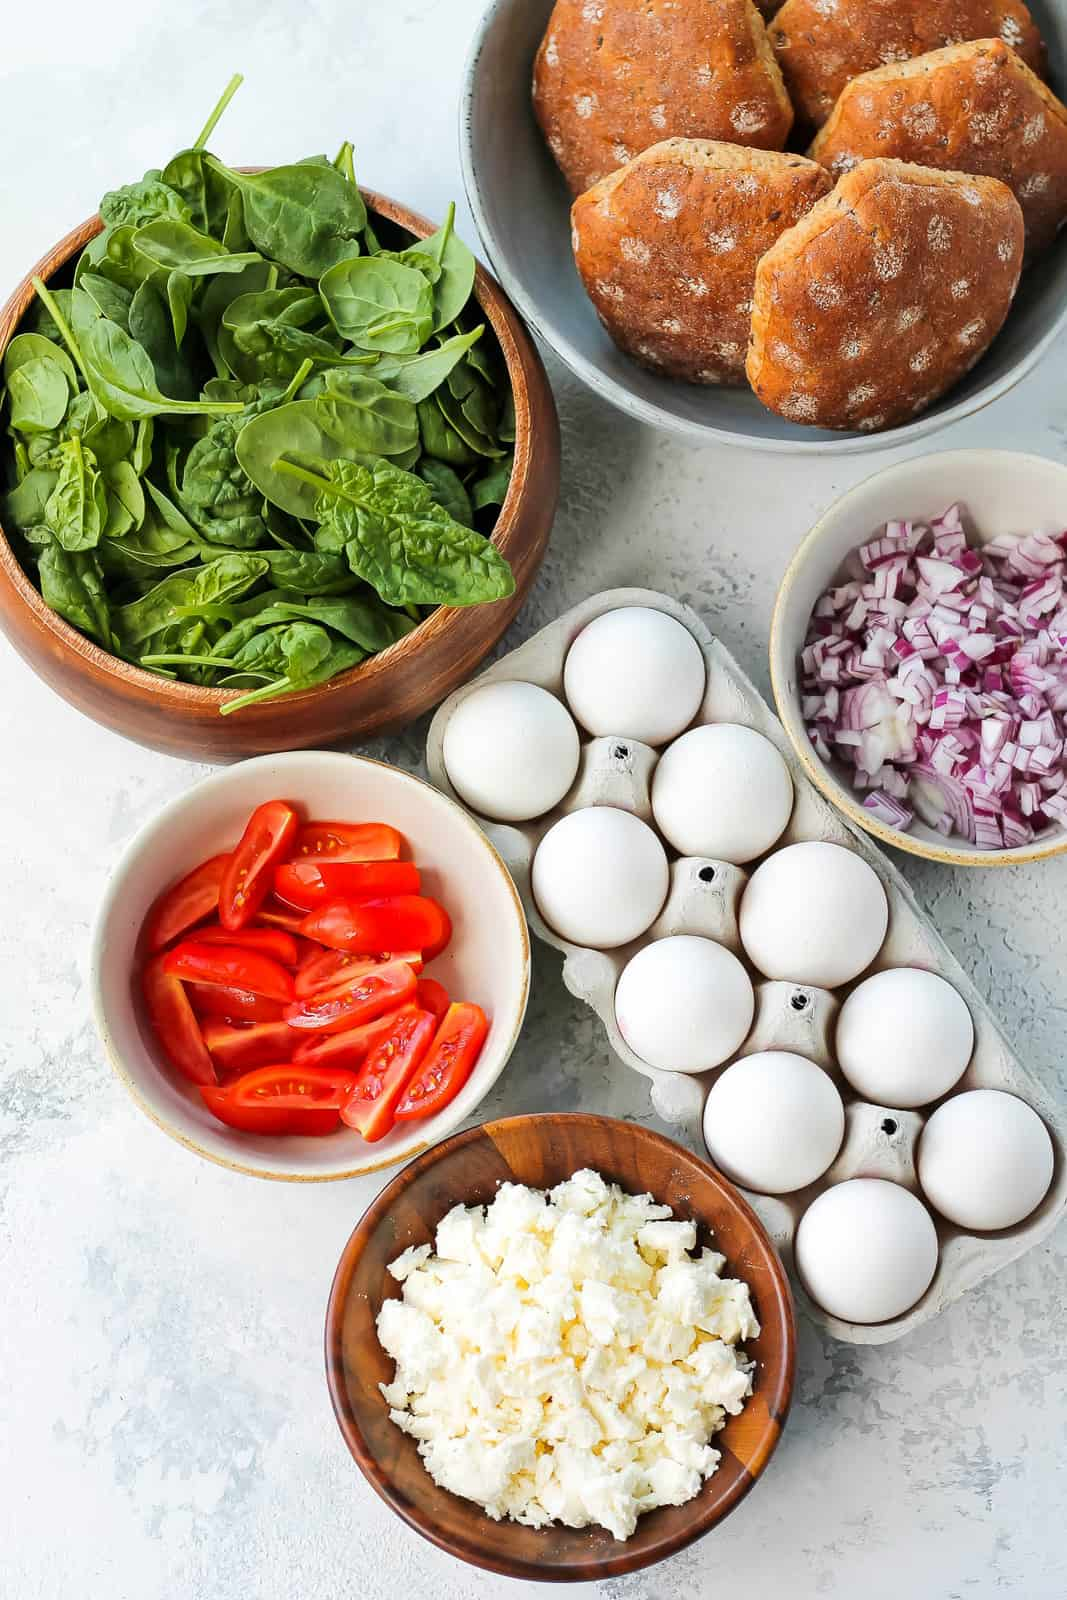 eggs, feta, spinach, tomatoes, red onion, and whole grain buns on a grey background